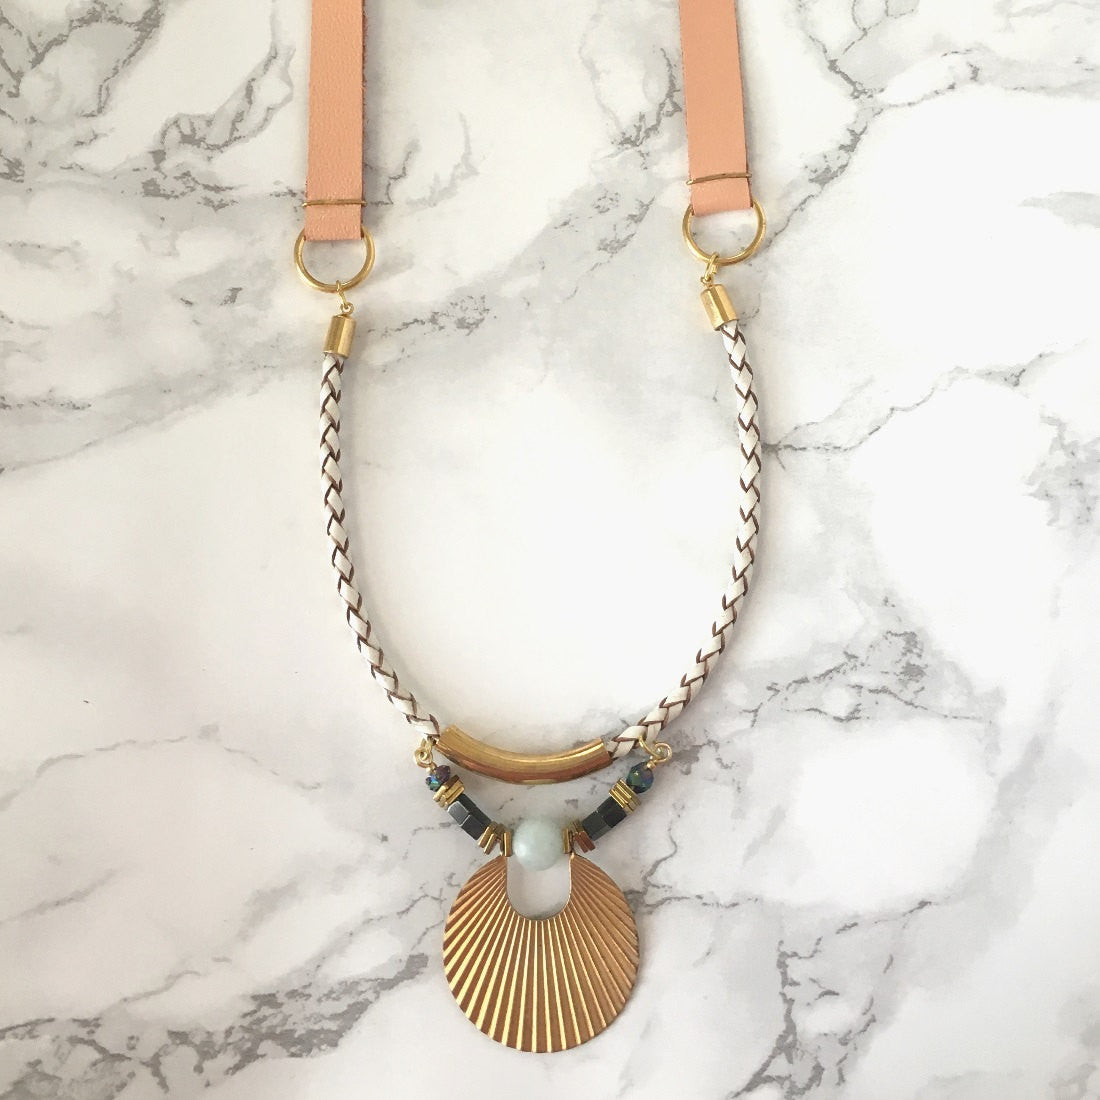 Peach Art Deco Long Leather Necklace